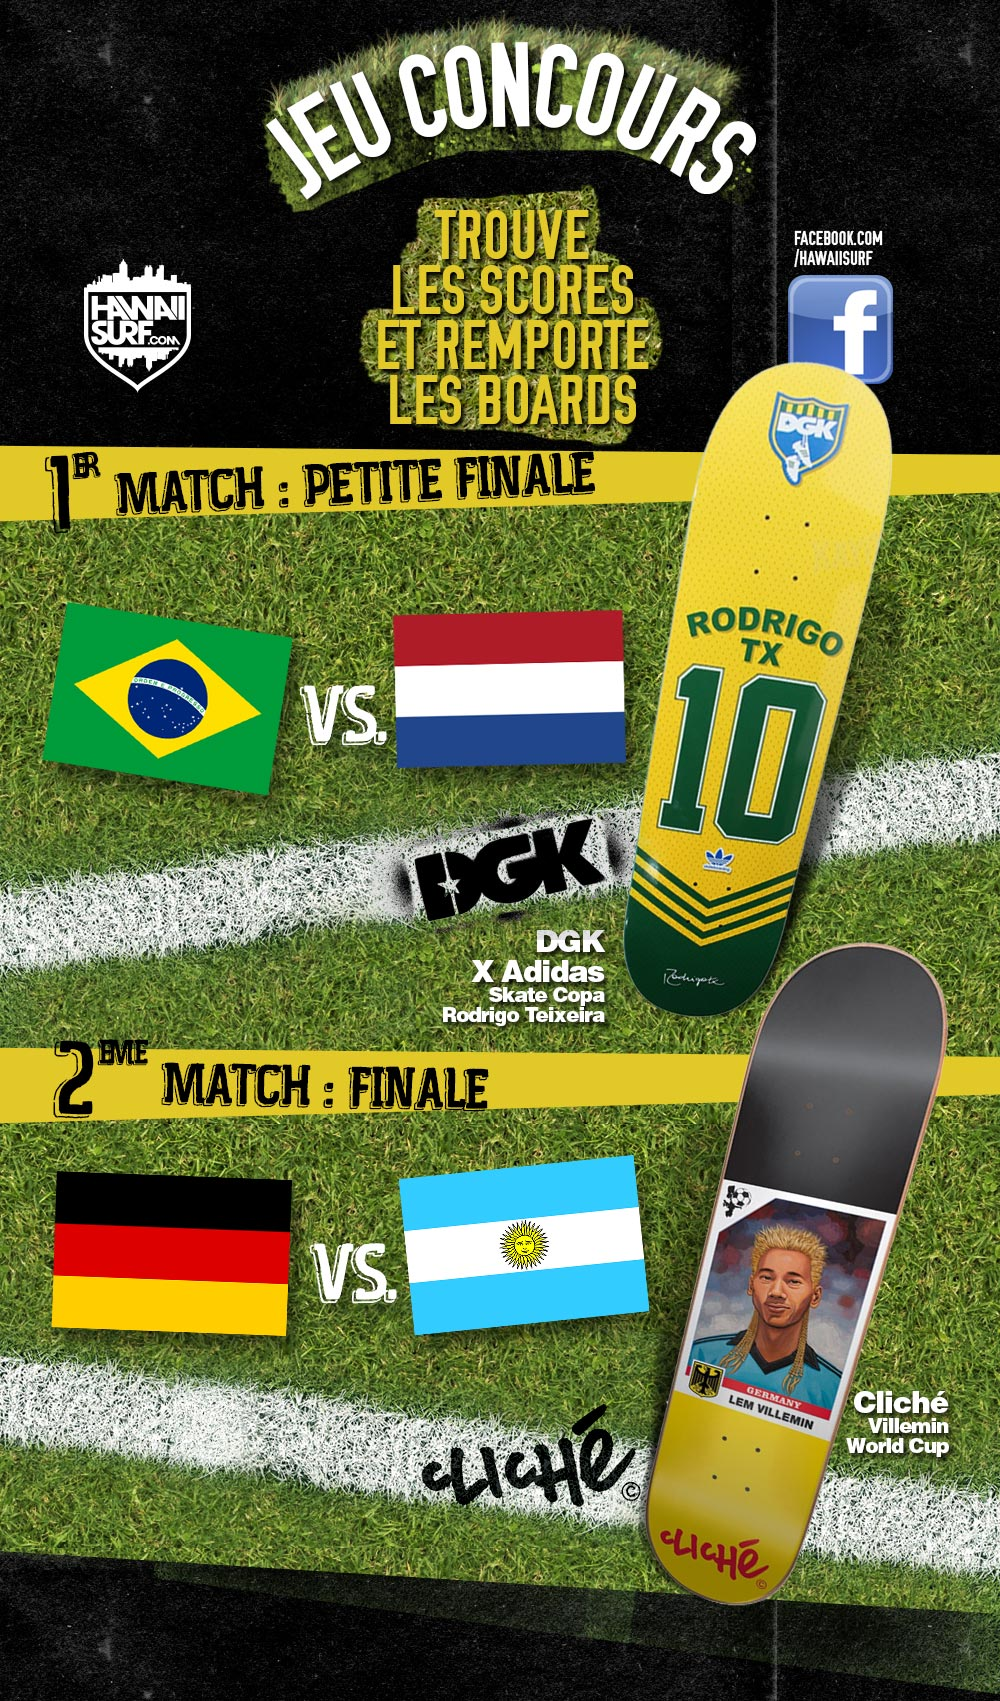 Jeu concours world cup foot